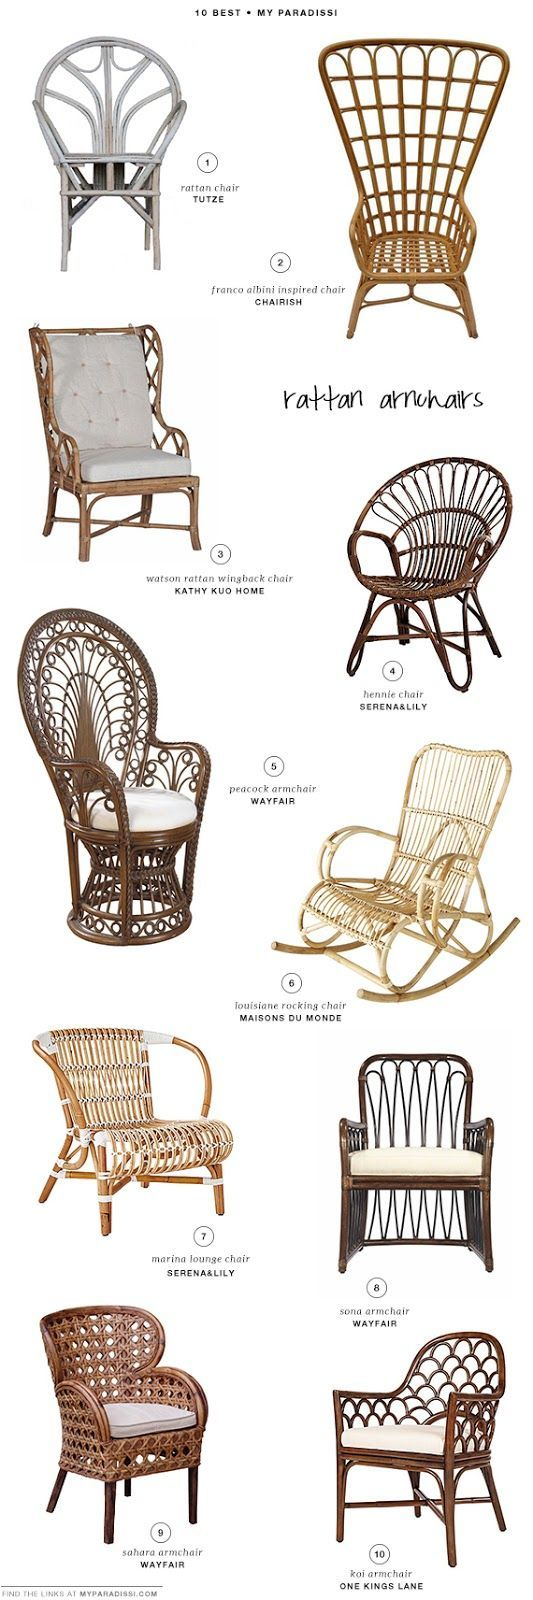 Wicker and rattan chairs come in such interesting shapes and can be so full of character. They're easy to style and light to drag around and reposition and great for building texture in a welcoming and gender neutral space. We're after 3/4 of these if you have anything similar you no longer need. Please send a message.